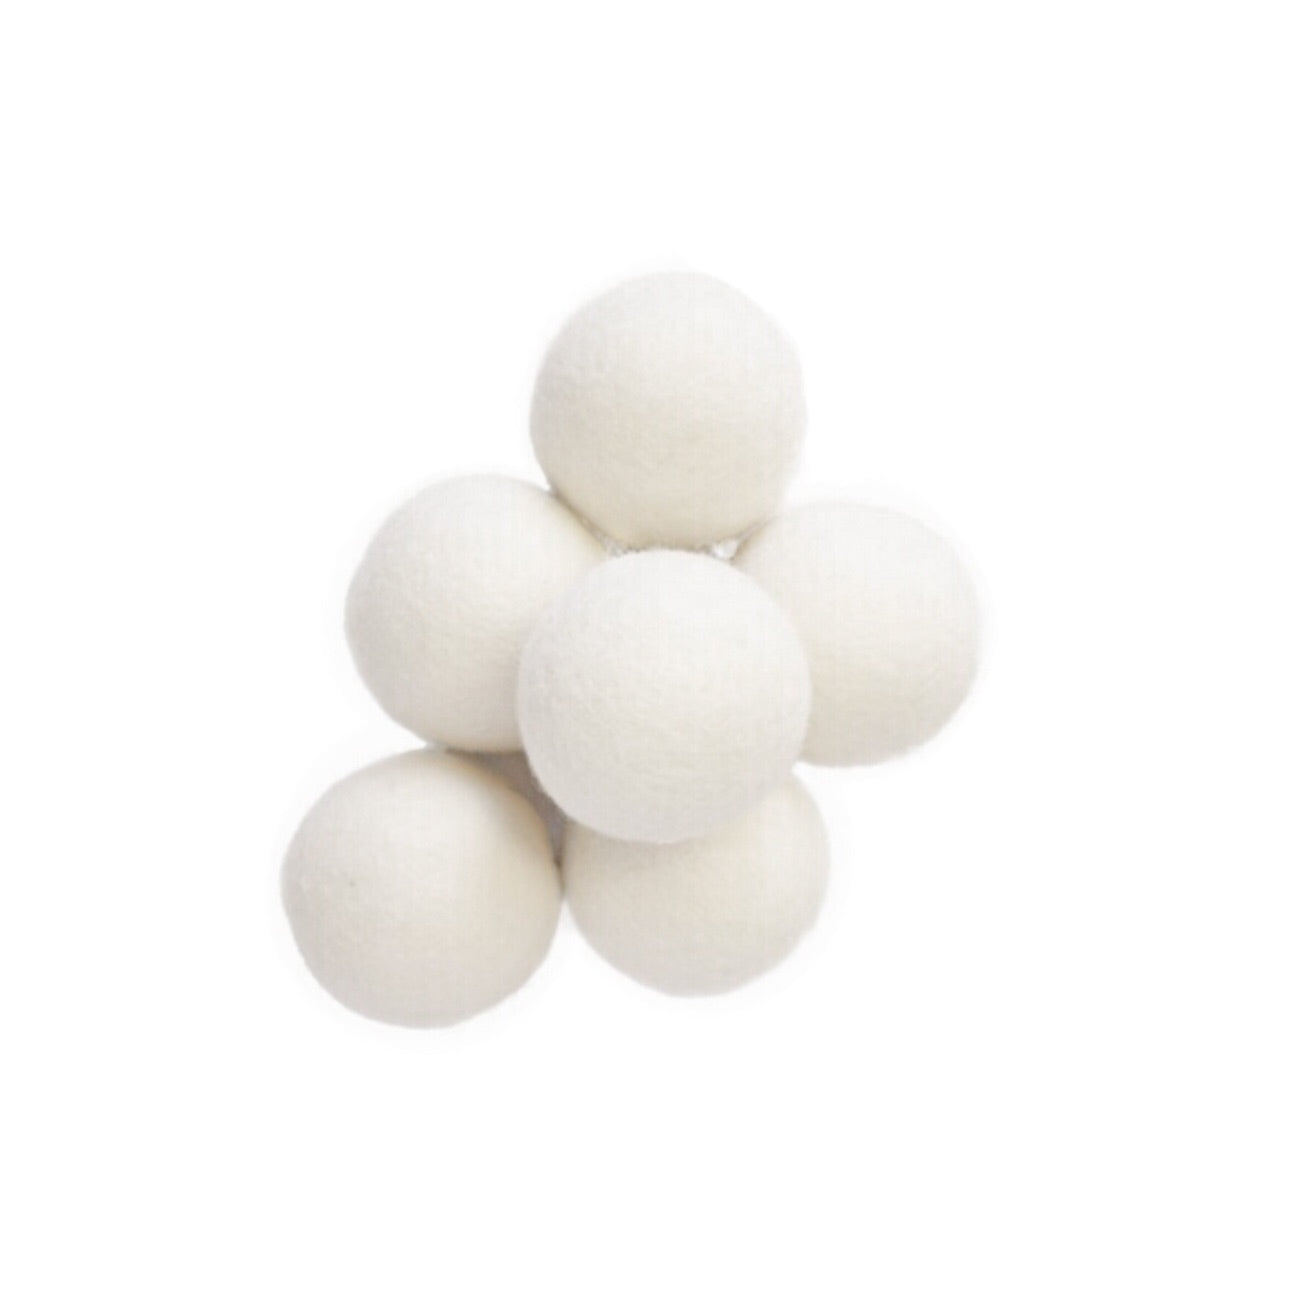 100% Organic Wool Dryer Balls